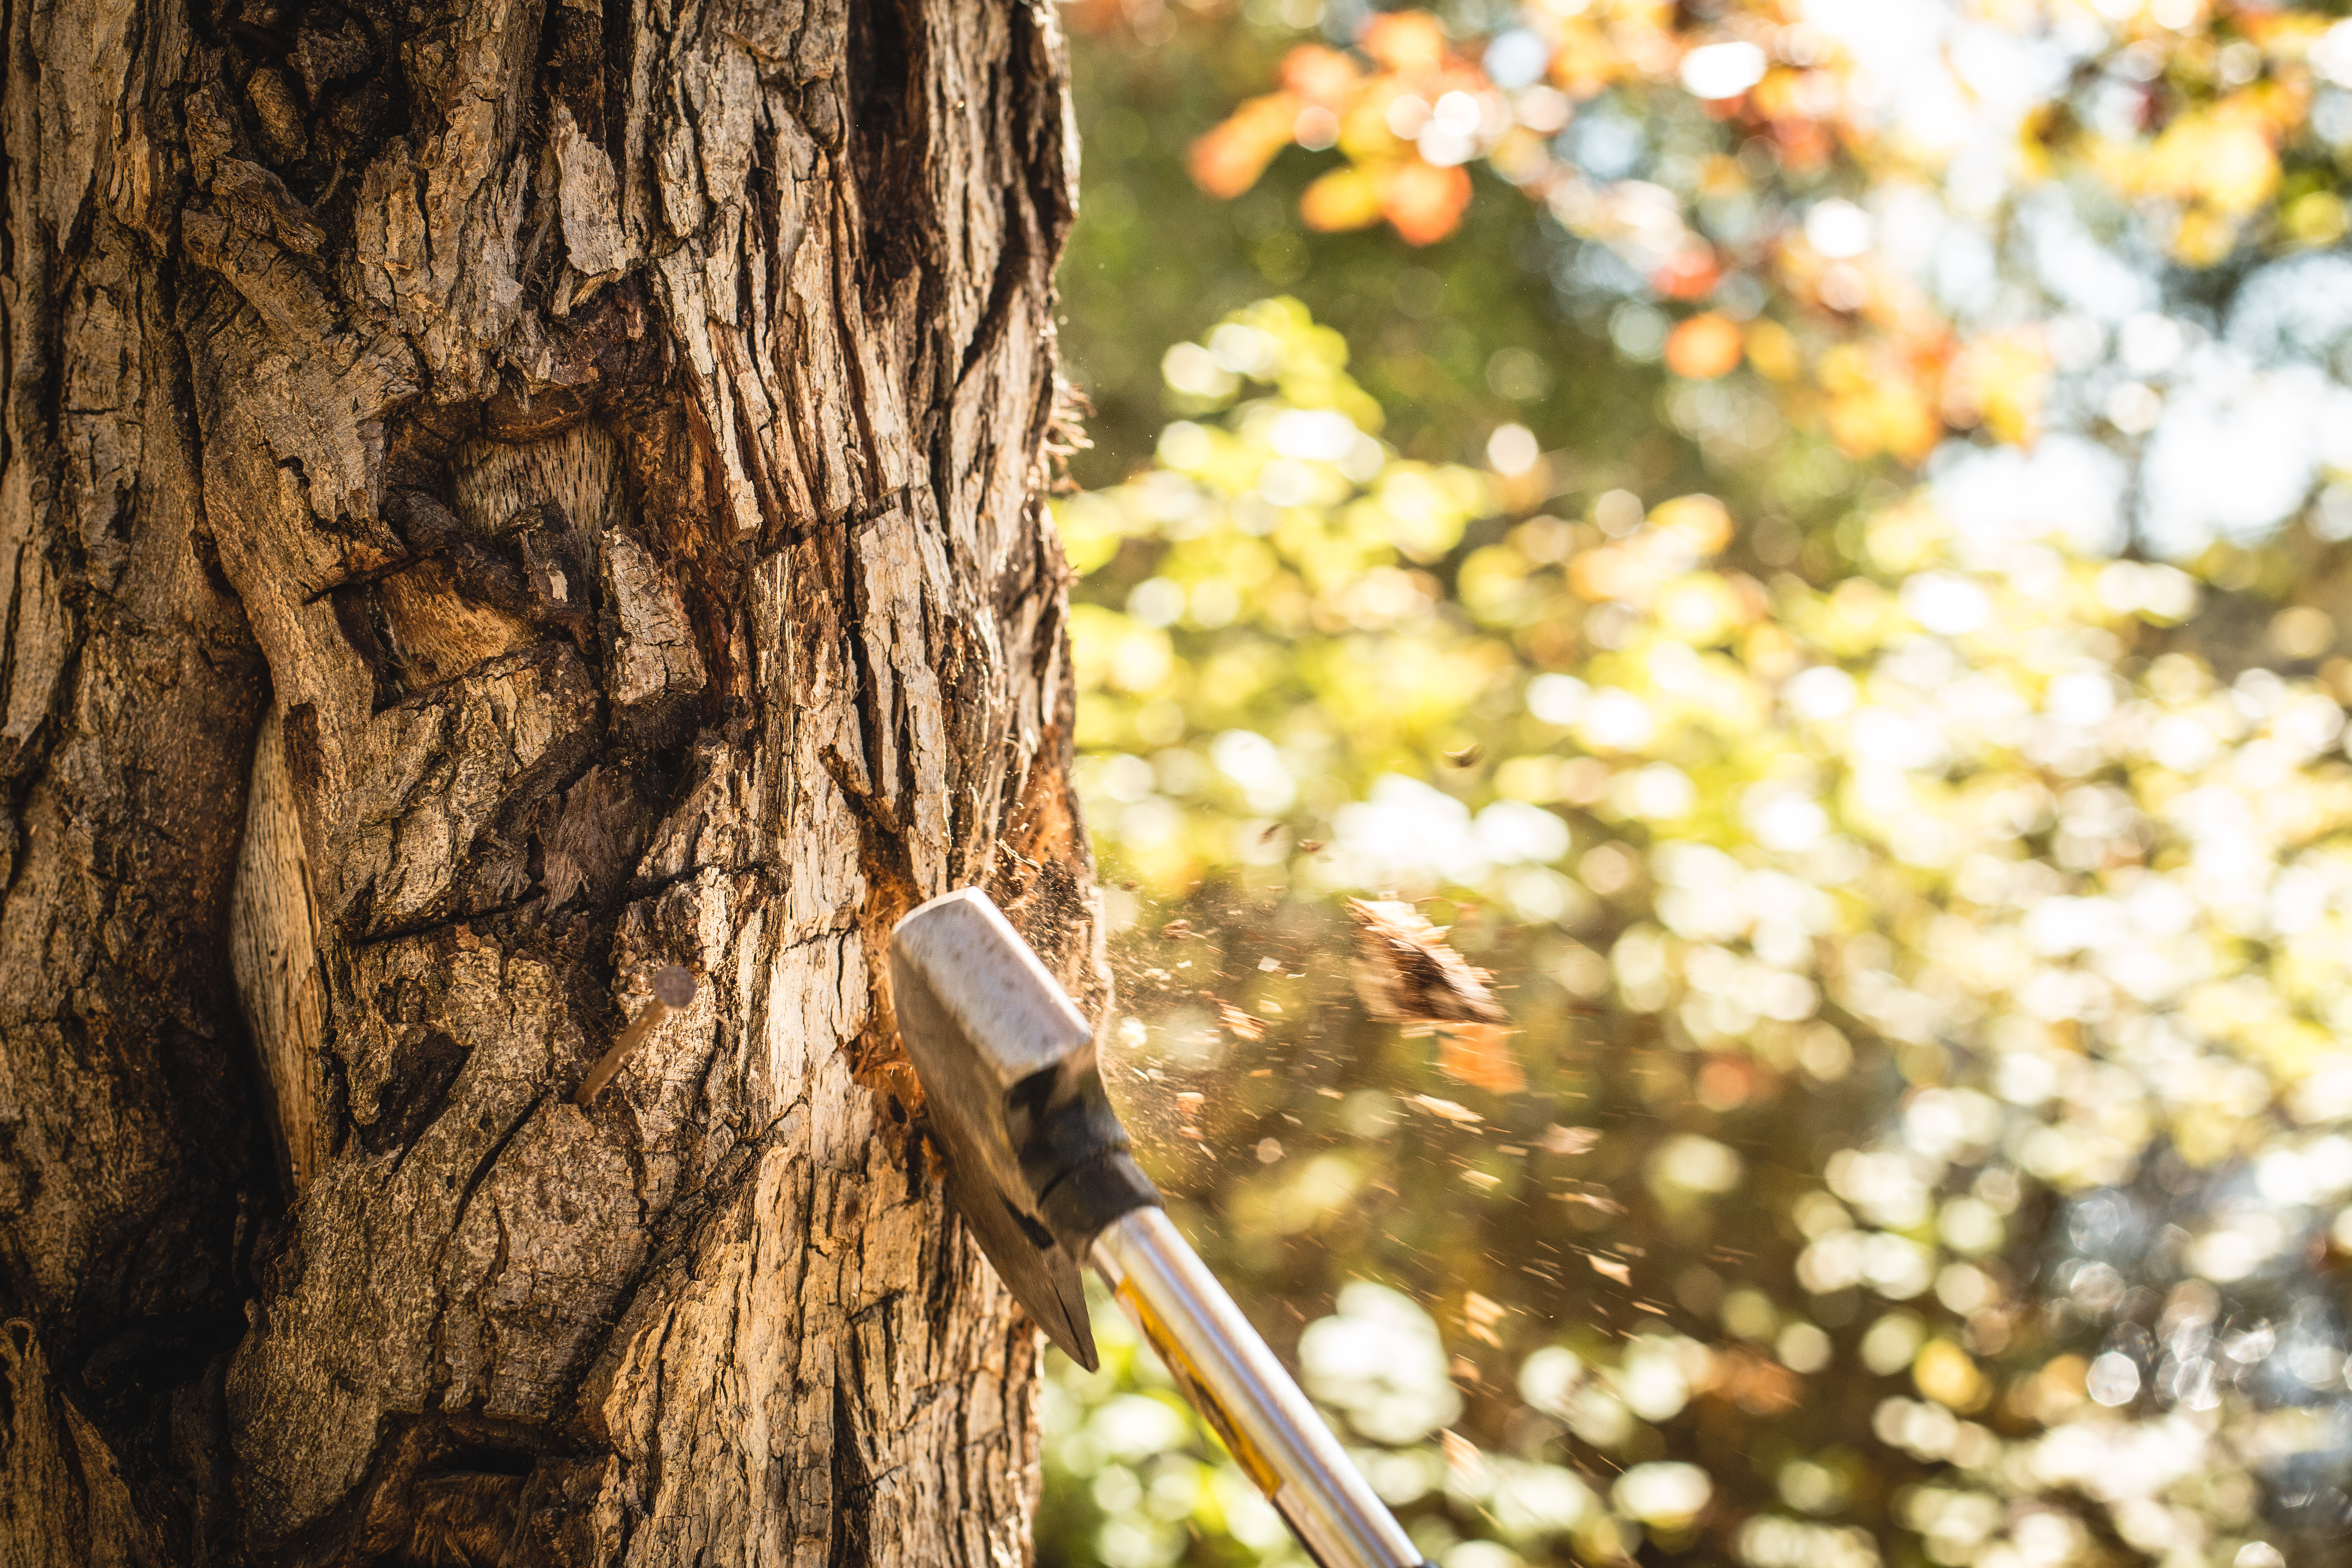 Sharp axe strikes a tree with sunny fall foliage in the background